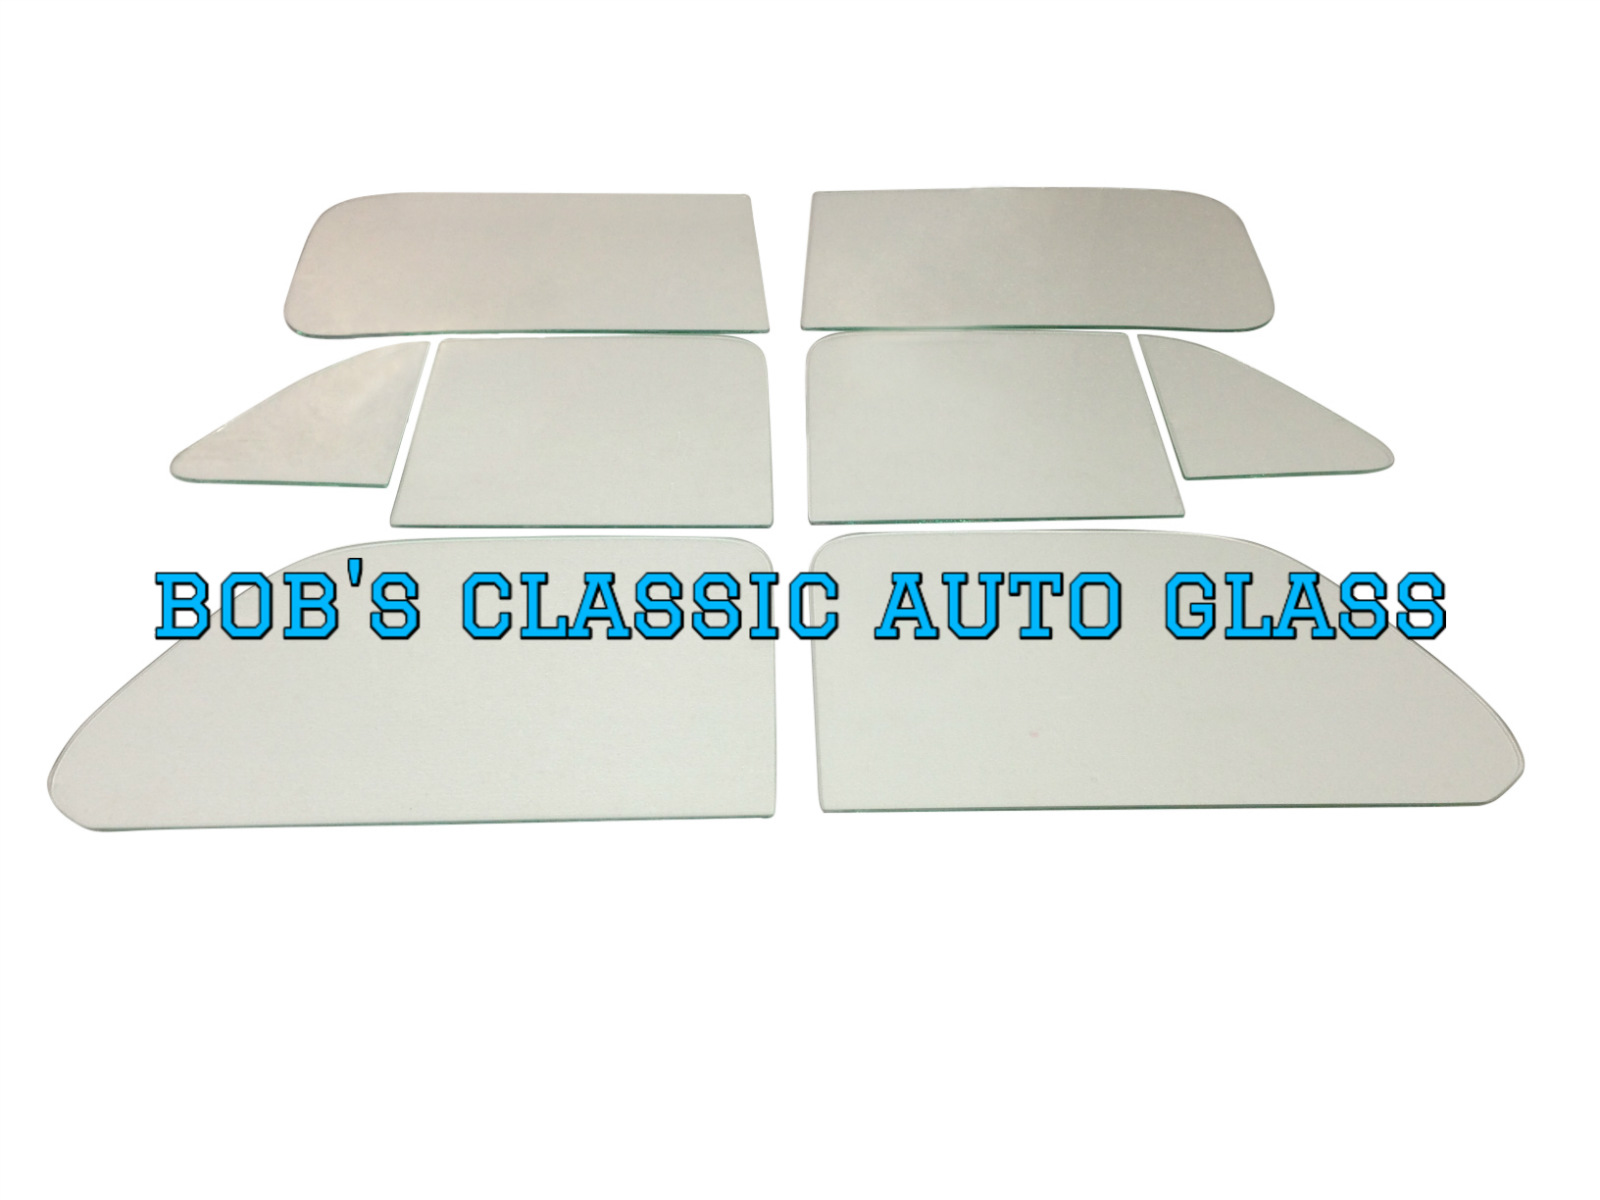 1946 Desoto Deluxe 2 Door Sedan Auto Glass Kit NE